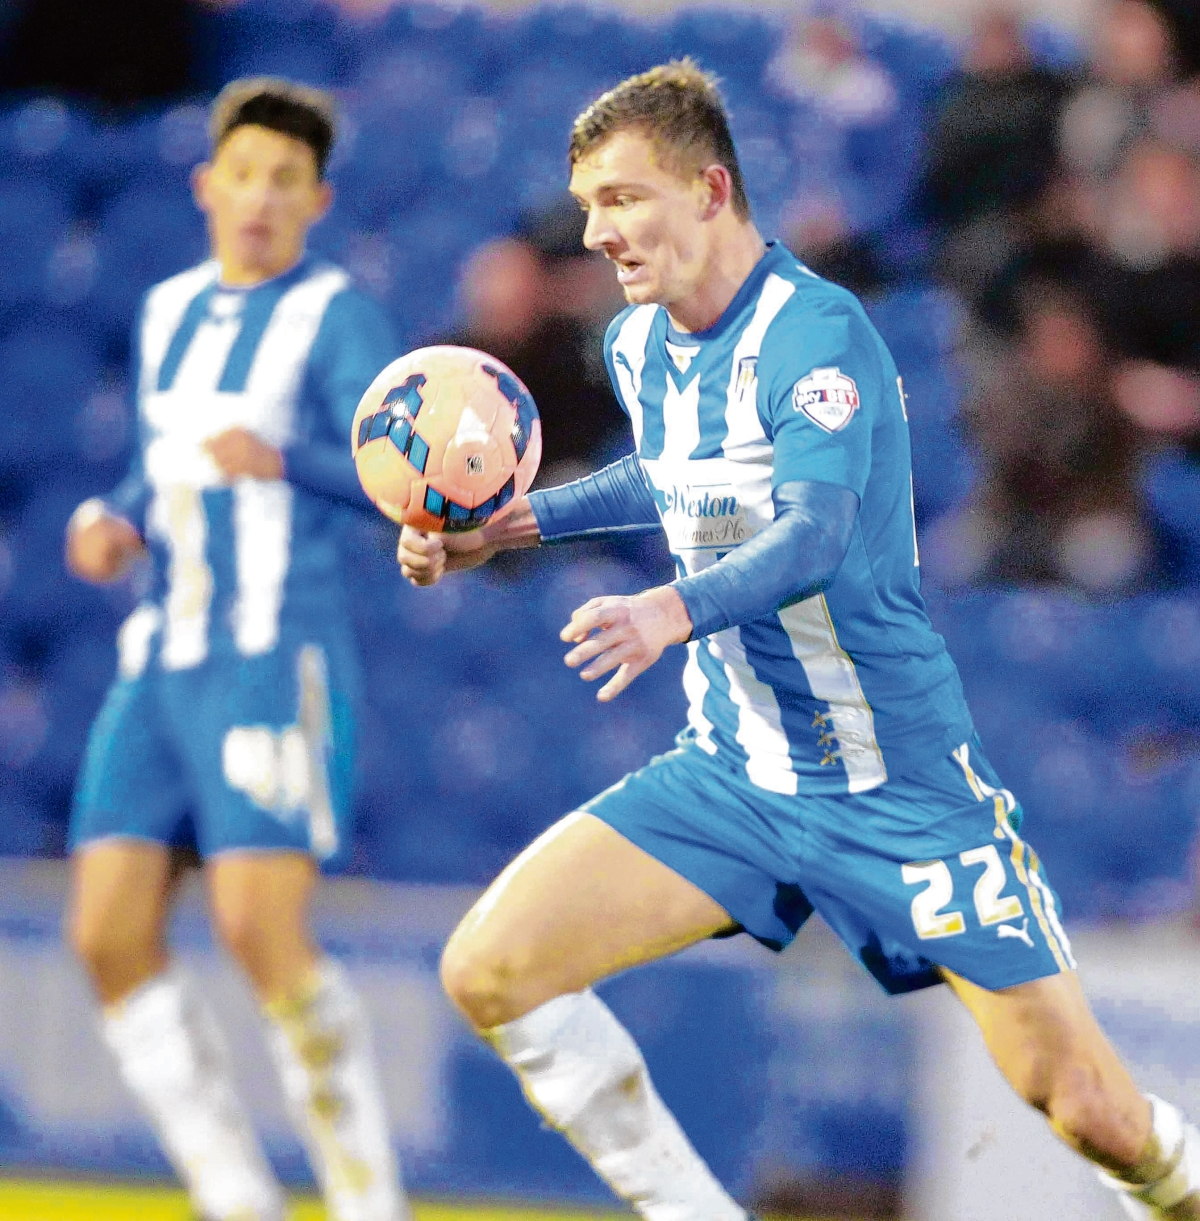 Back in the fold - Alex Gilbey is set to return from injury to feature for Colchester United at Bishop's Stortford tonight.